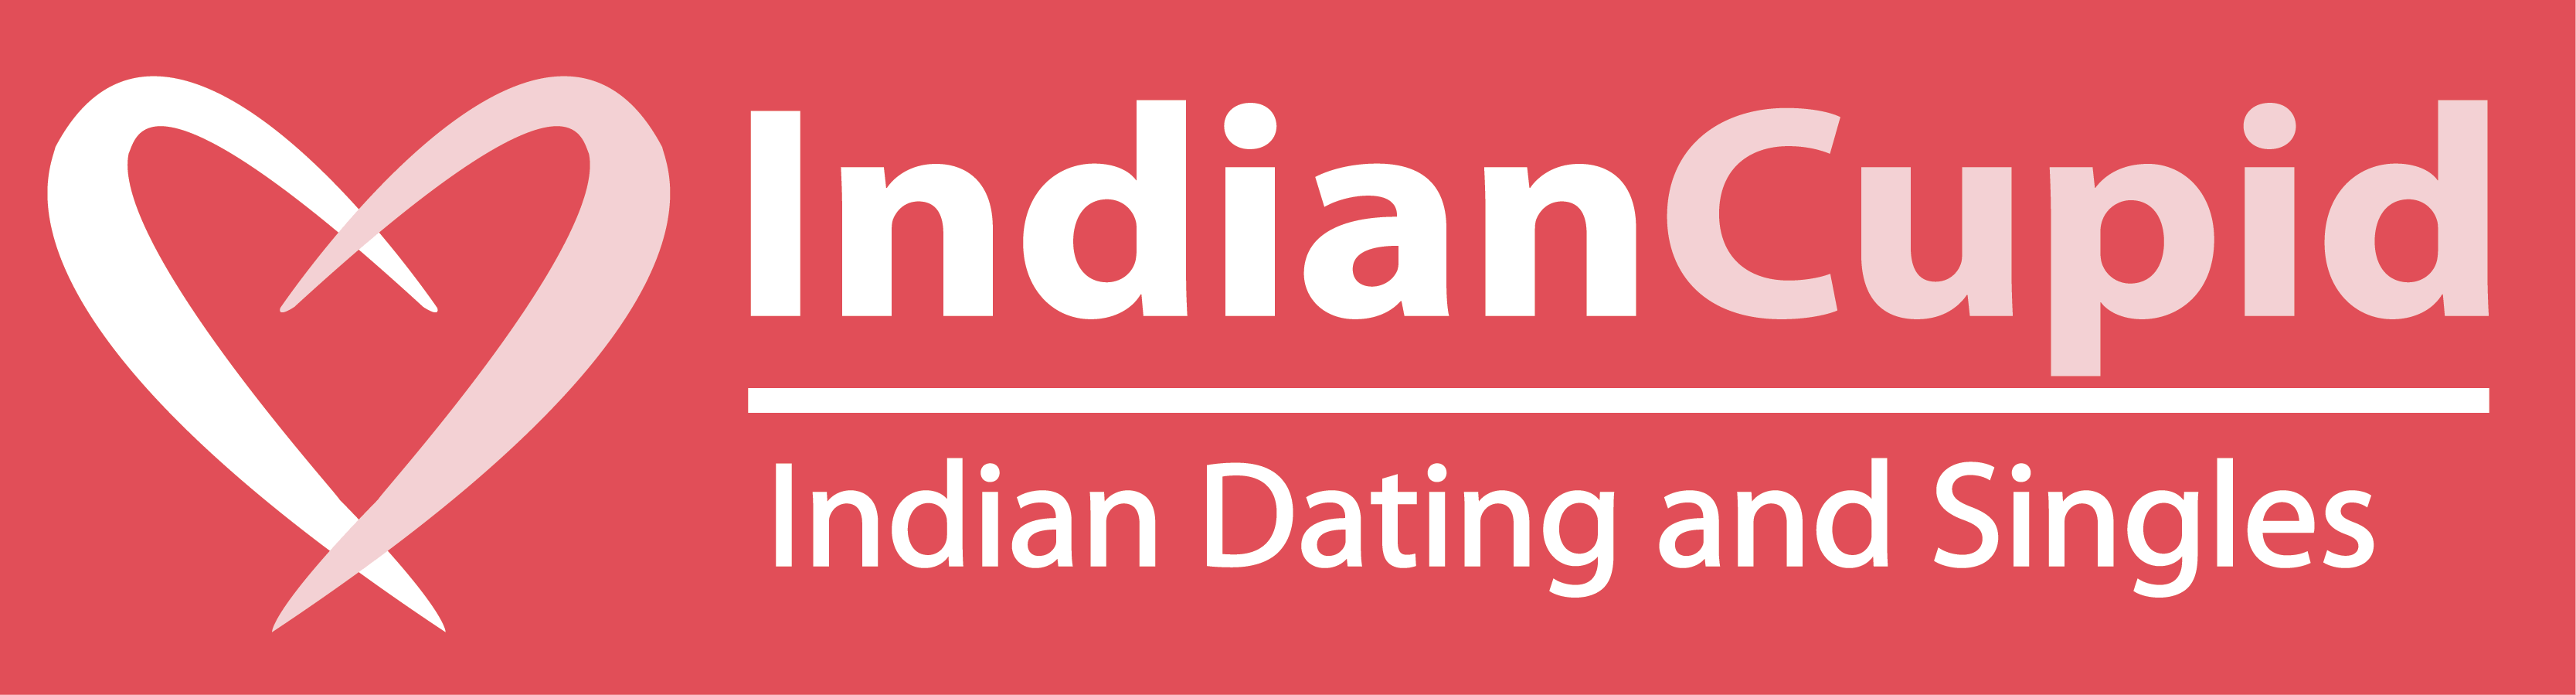 indian cupid logo